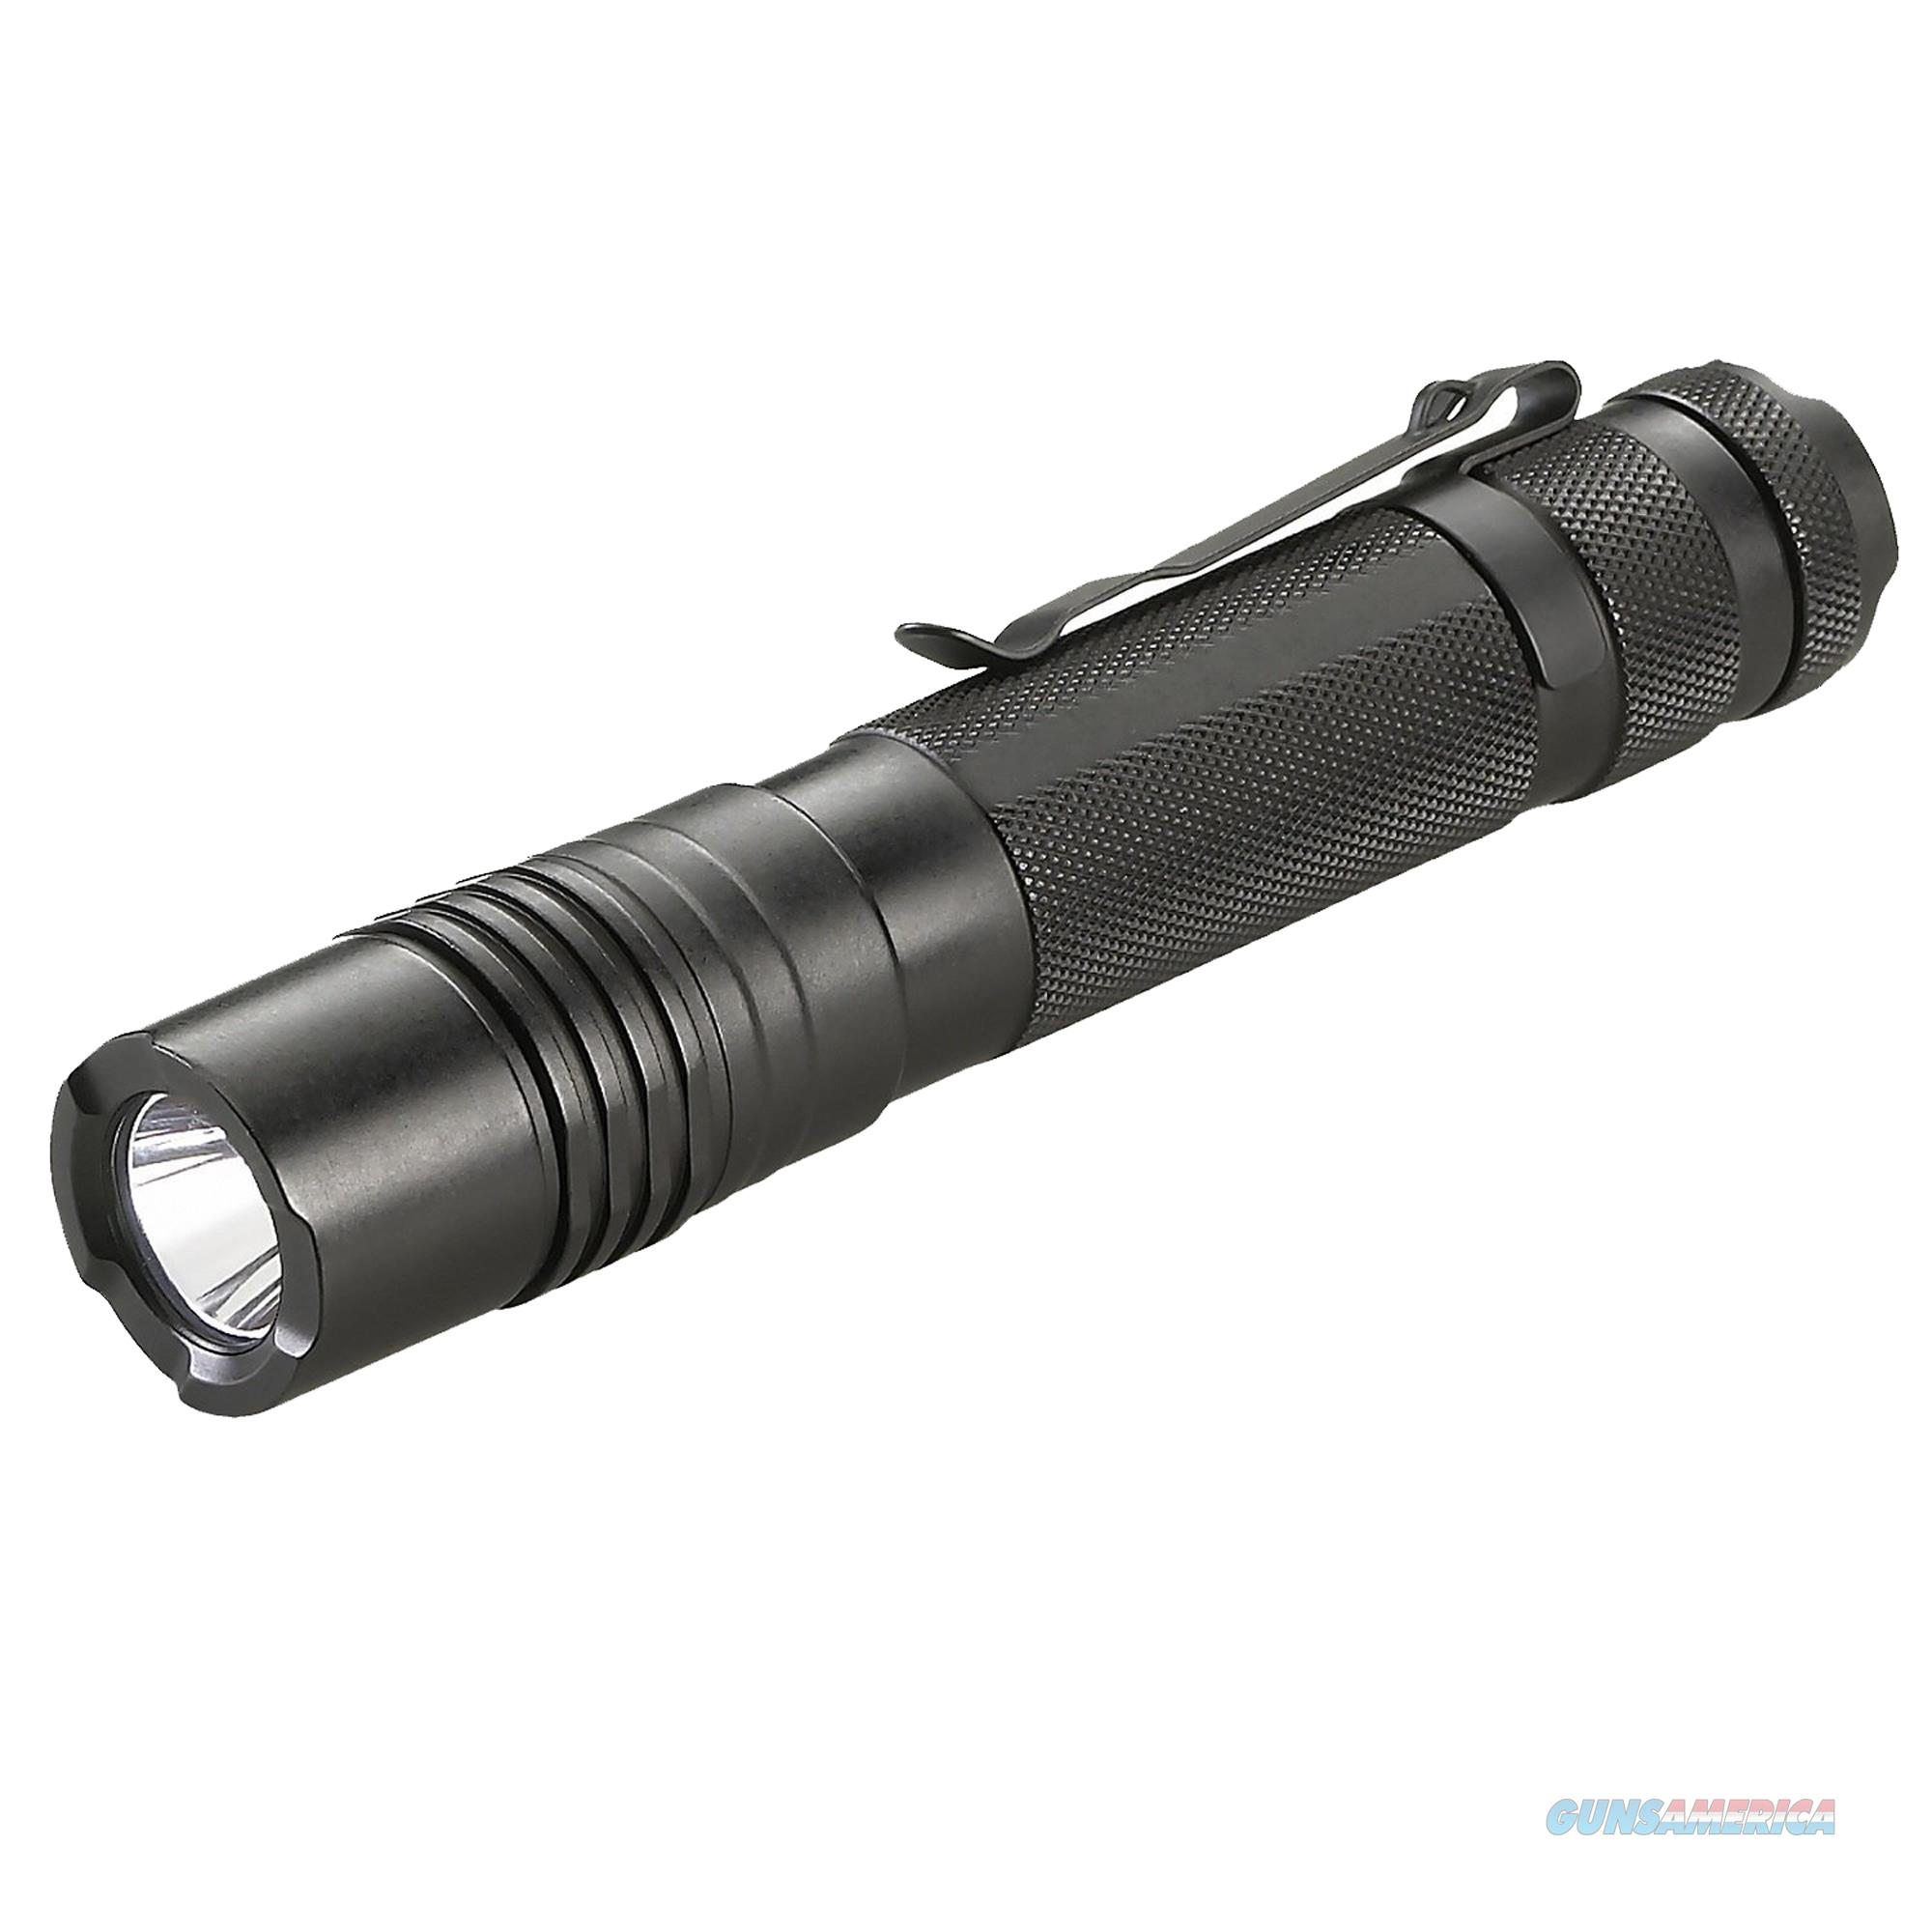 Streamlight Protac Hl Usb 88052  Non-Guns > Tactical Equipment/Vests